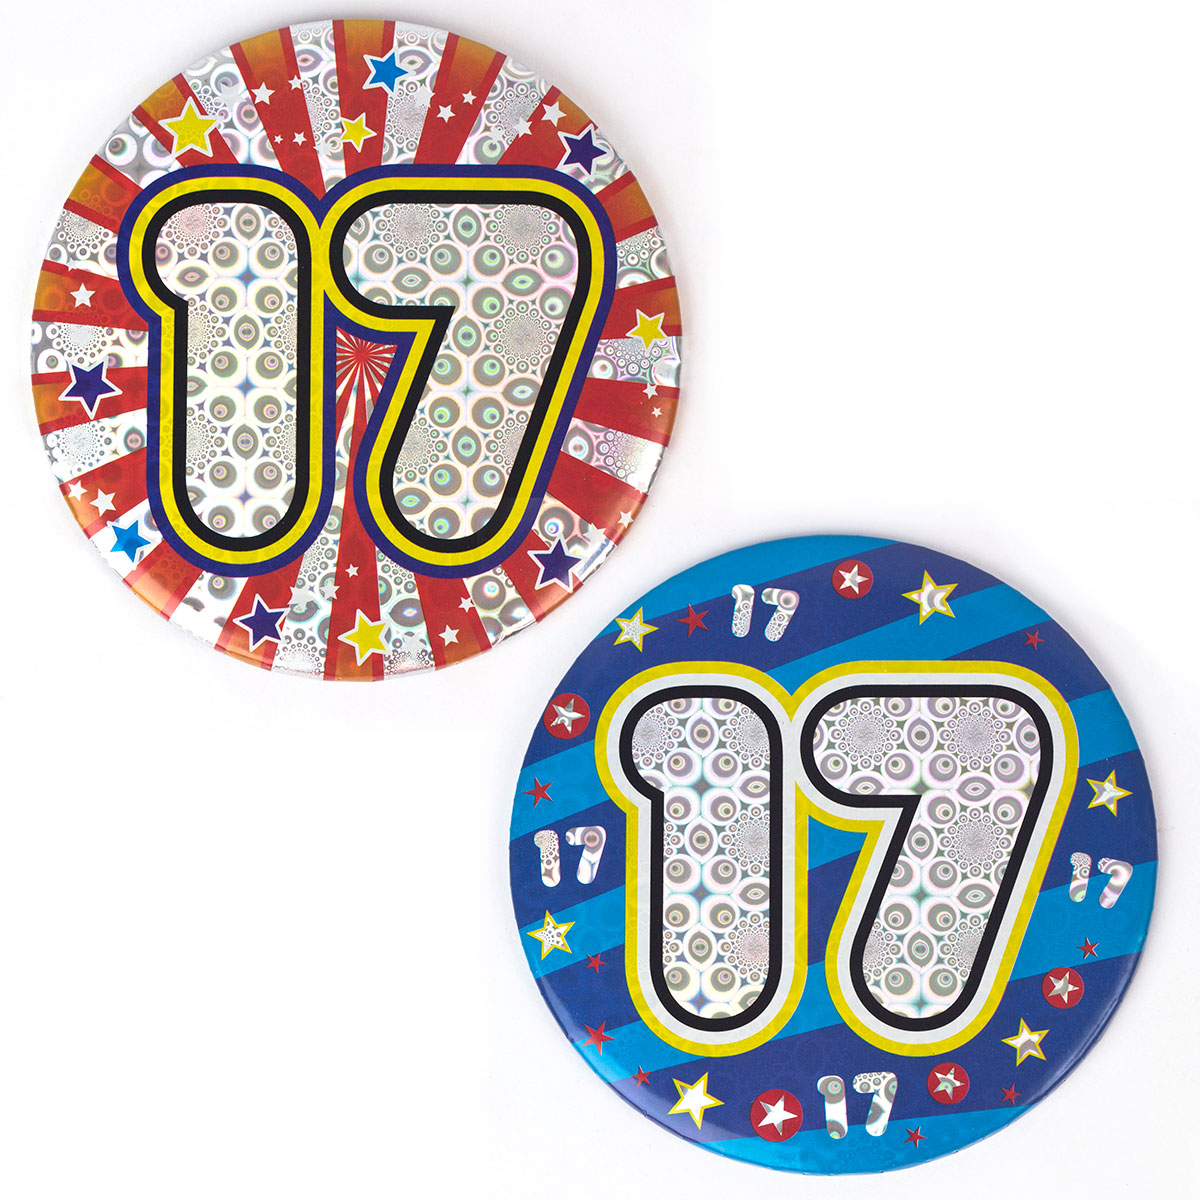 Birthday Badges From 39p.